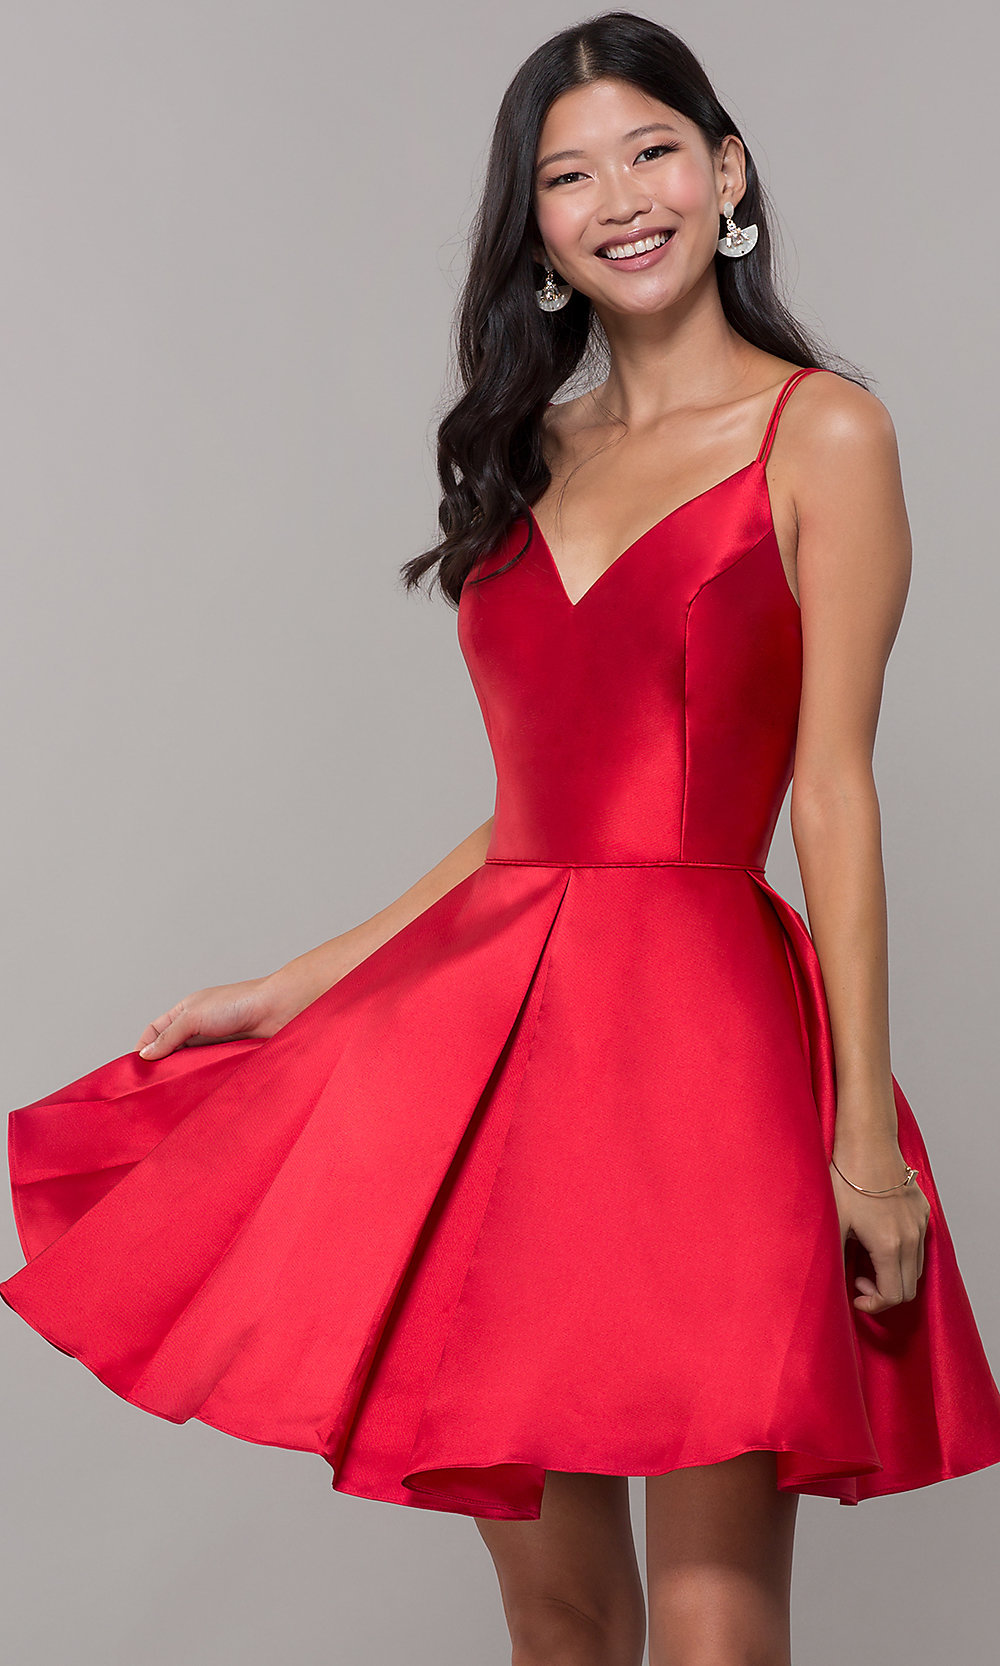 Alyce Double-Strap V-Neck Homecoming Dress - PromGirlRed Dresses